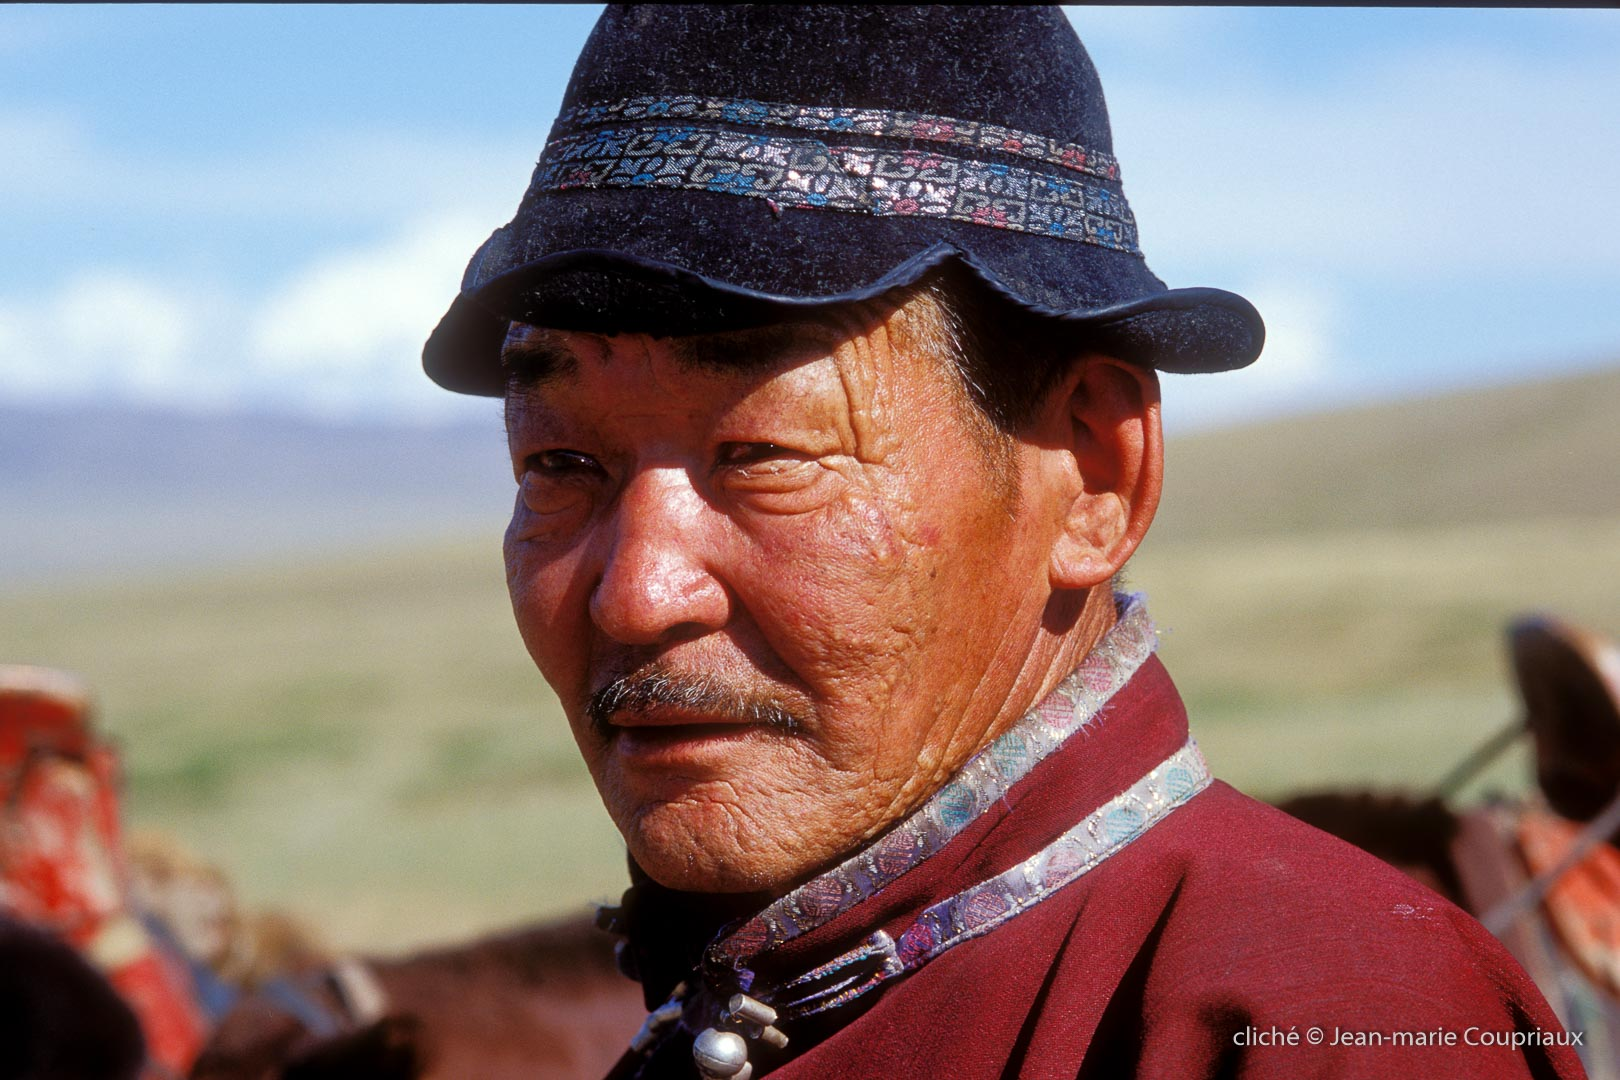 532-Mongolie-1999